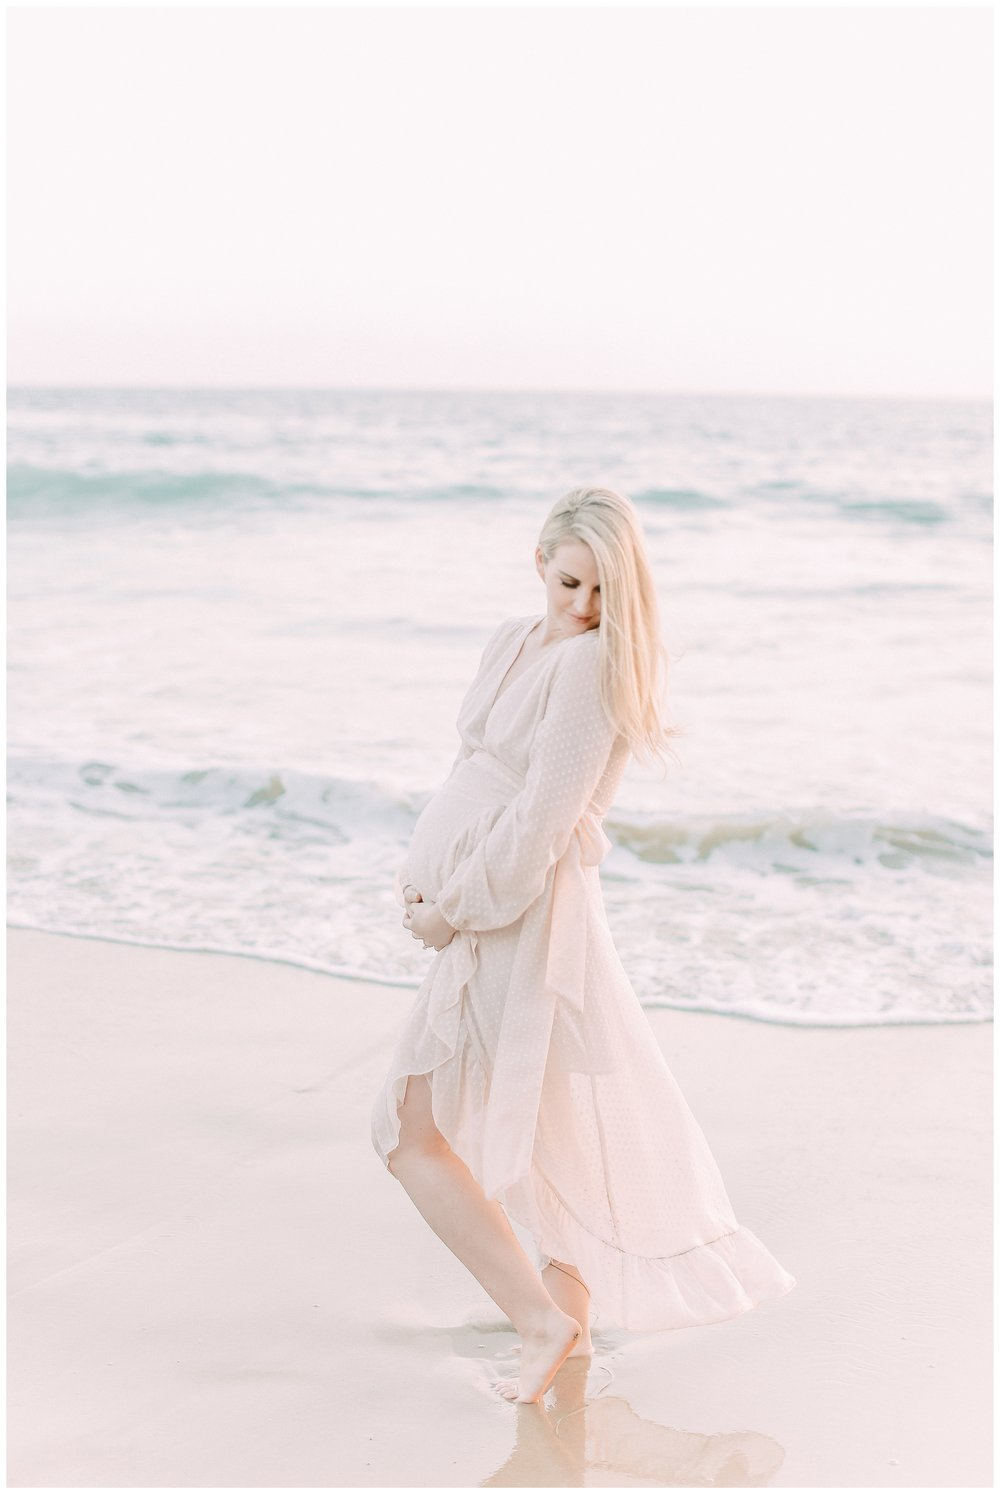 Little_Corona_Beach_Maternity_Session_Orange_county_family_photographer_cori_kleckner_photography_laguna_beach_family_session_0726.jpg